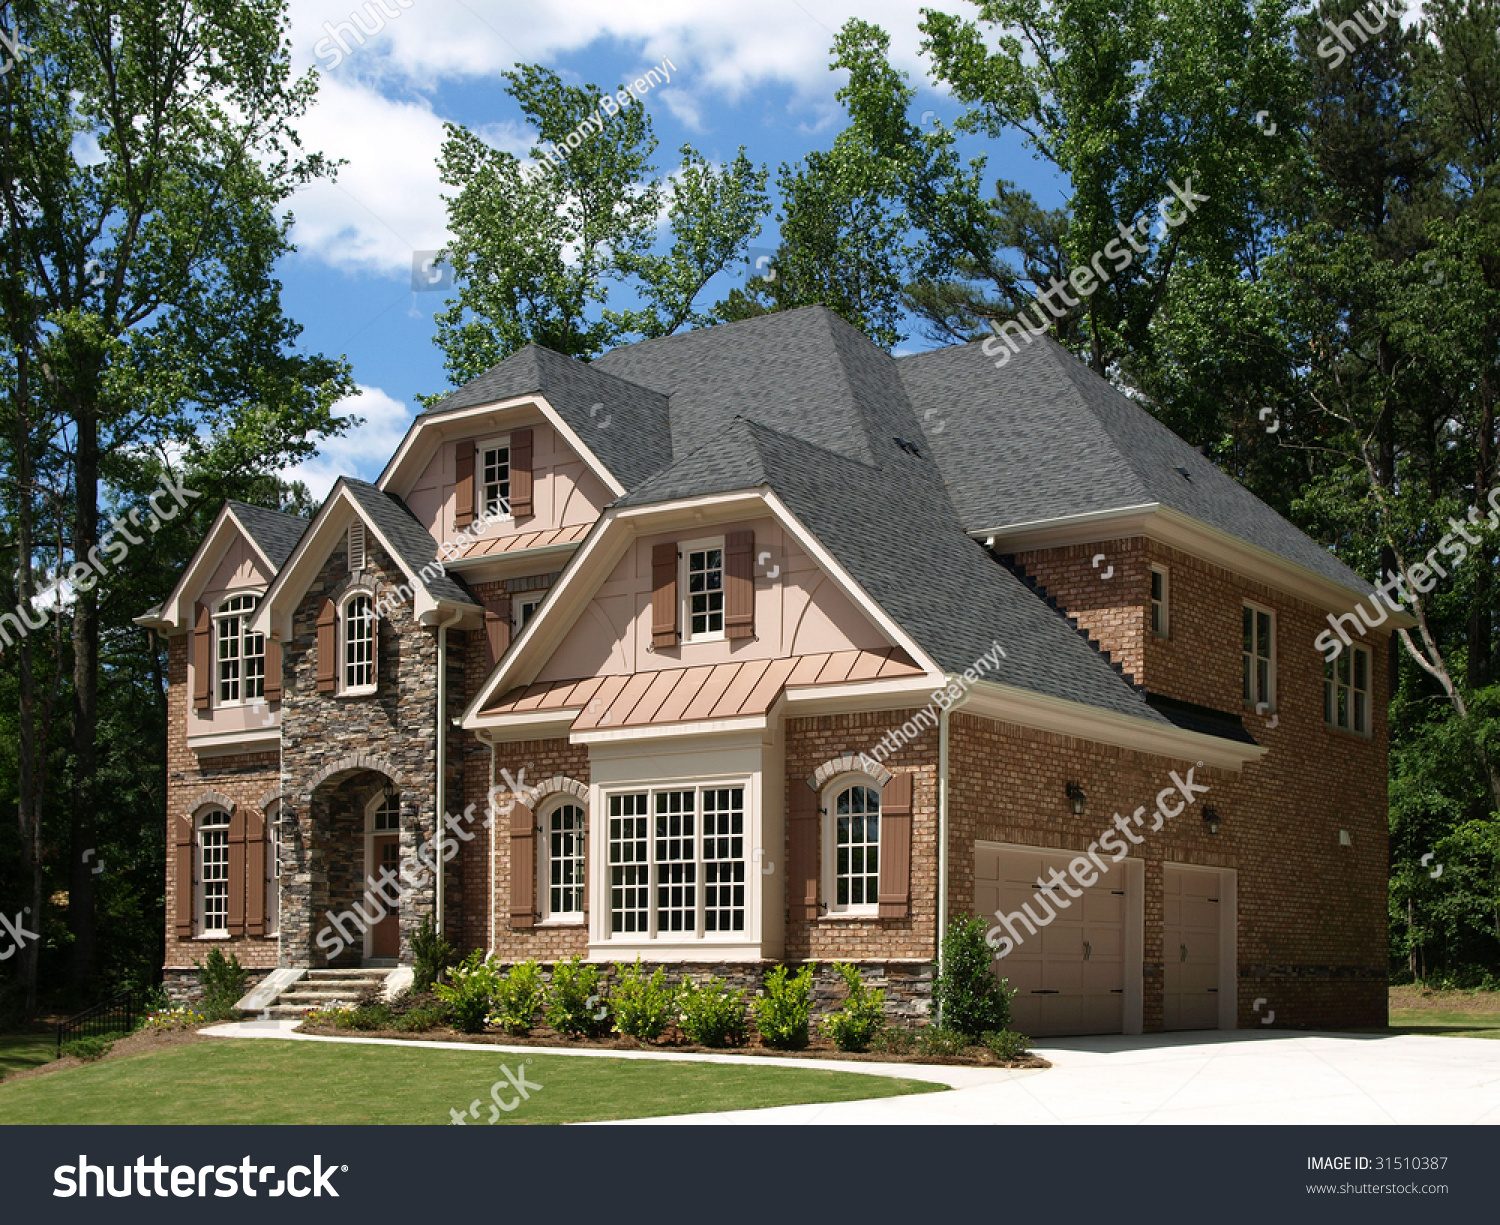 model luxury home exterior side view with tree background - Luxury Homes Exterior Brick